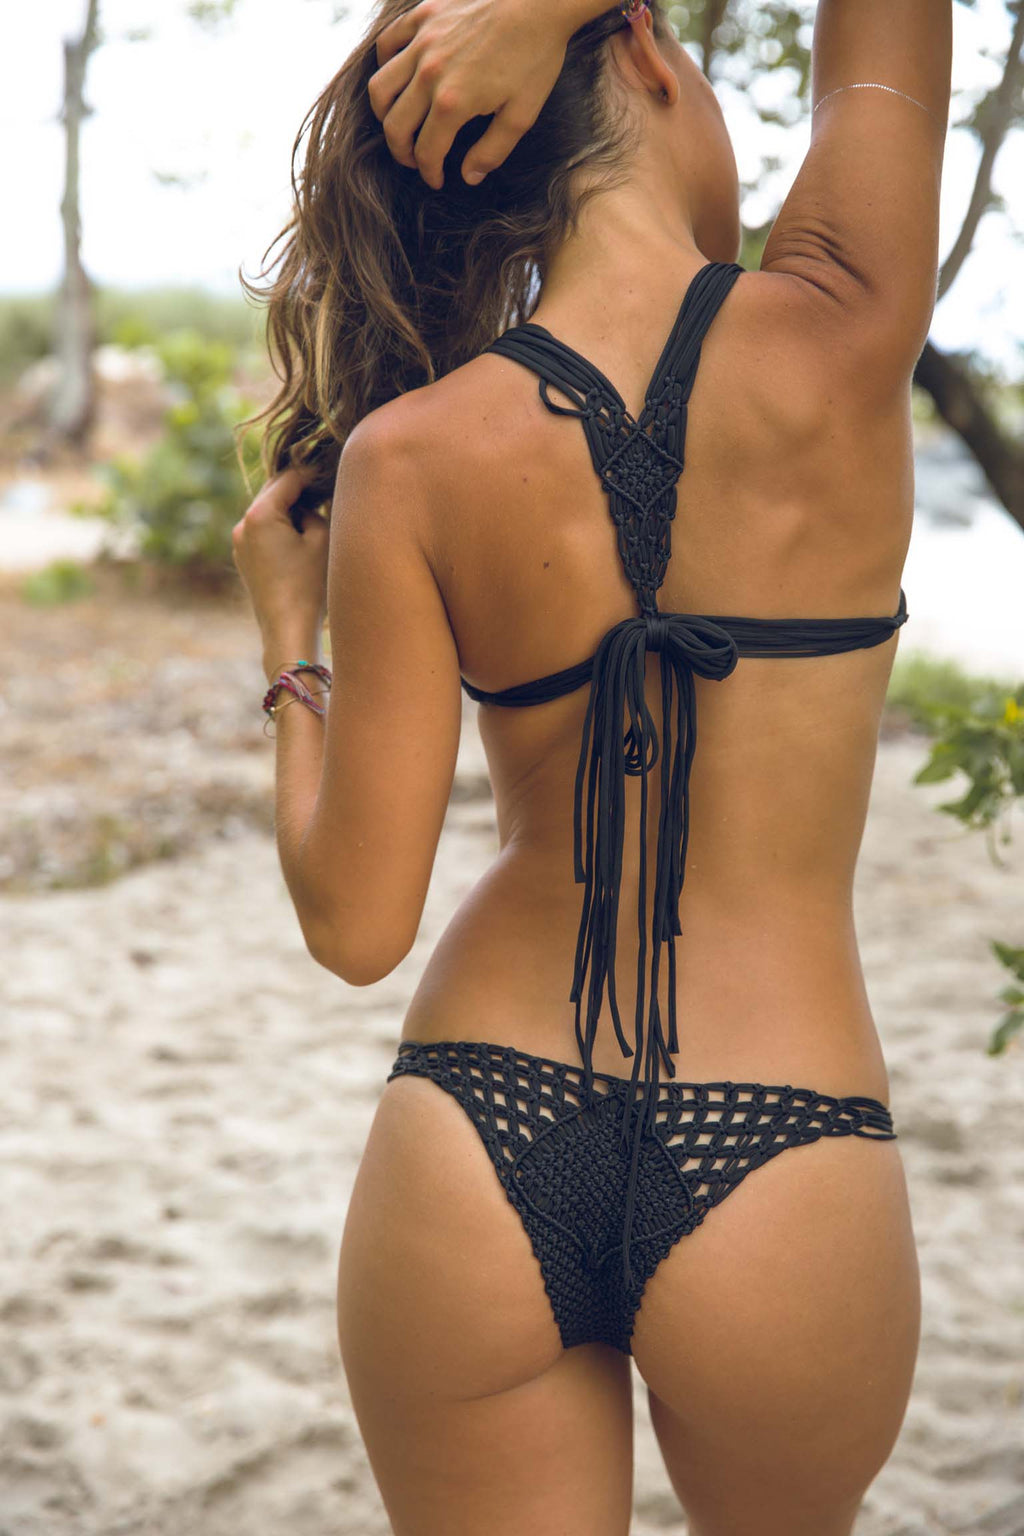 Koh Samui Macrame Bottom in Black - Boho Bum Island